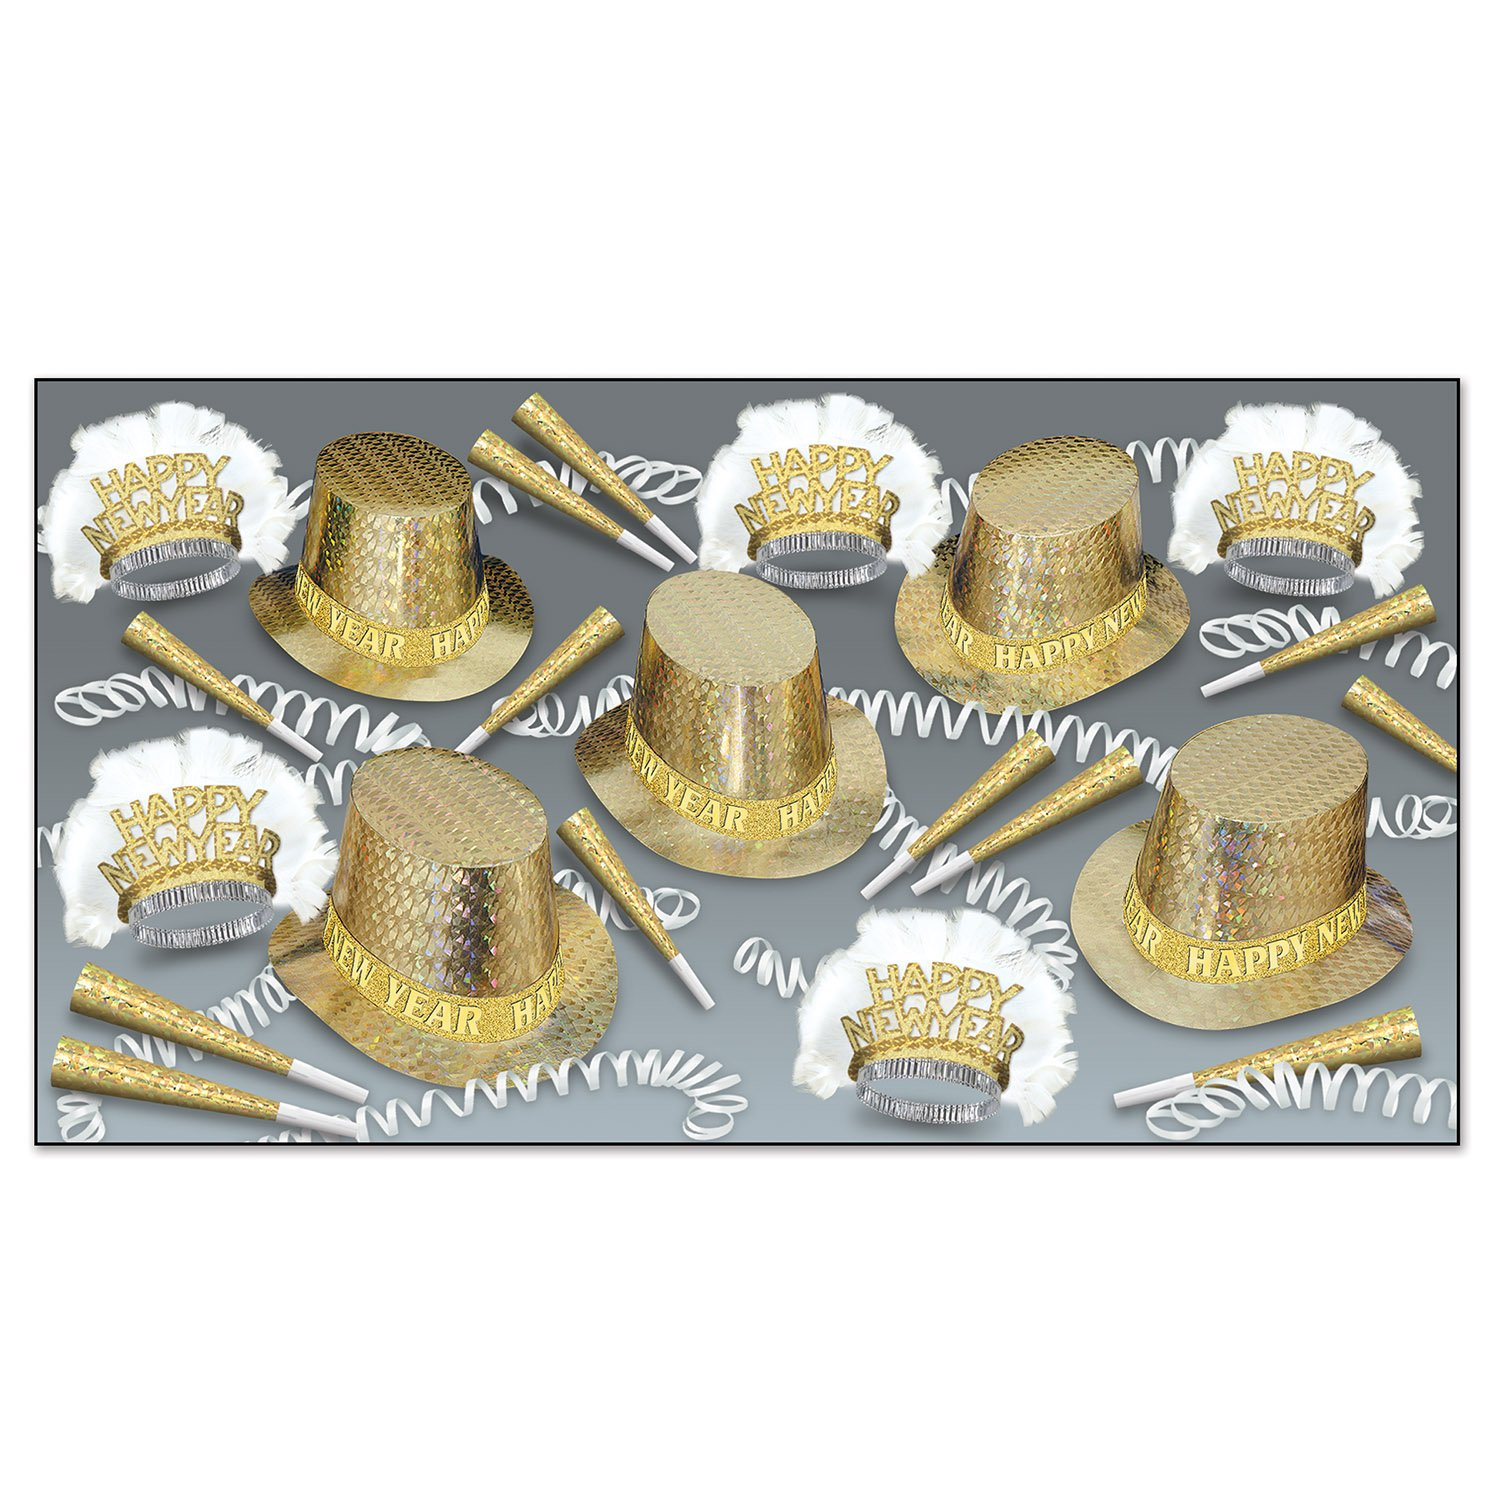 Beistle Topaz Happy New Year Assortment for 50, Gold/White by Beistle